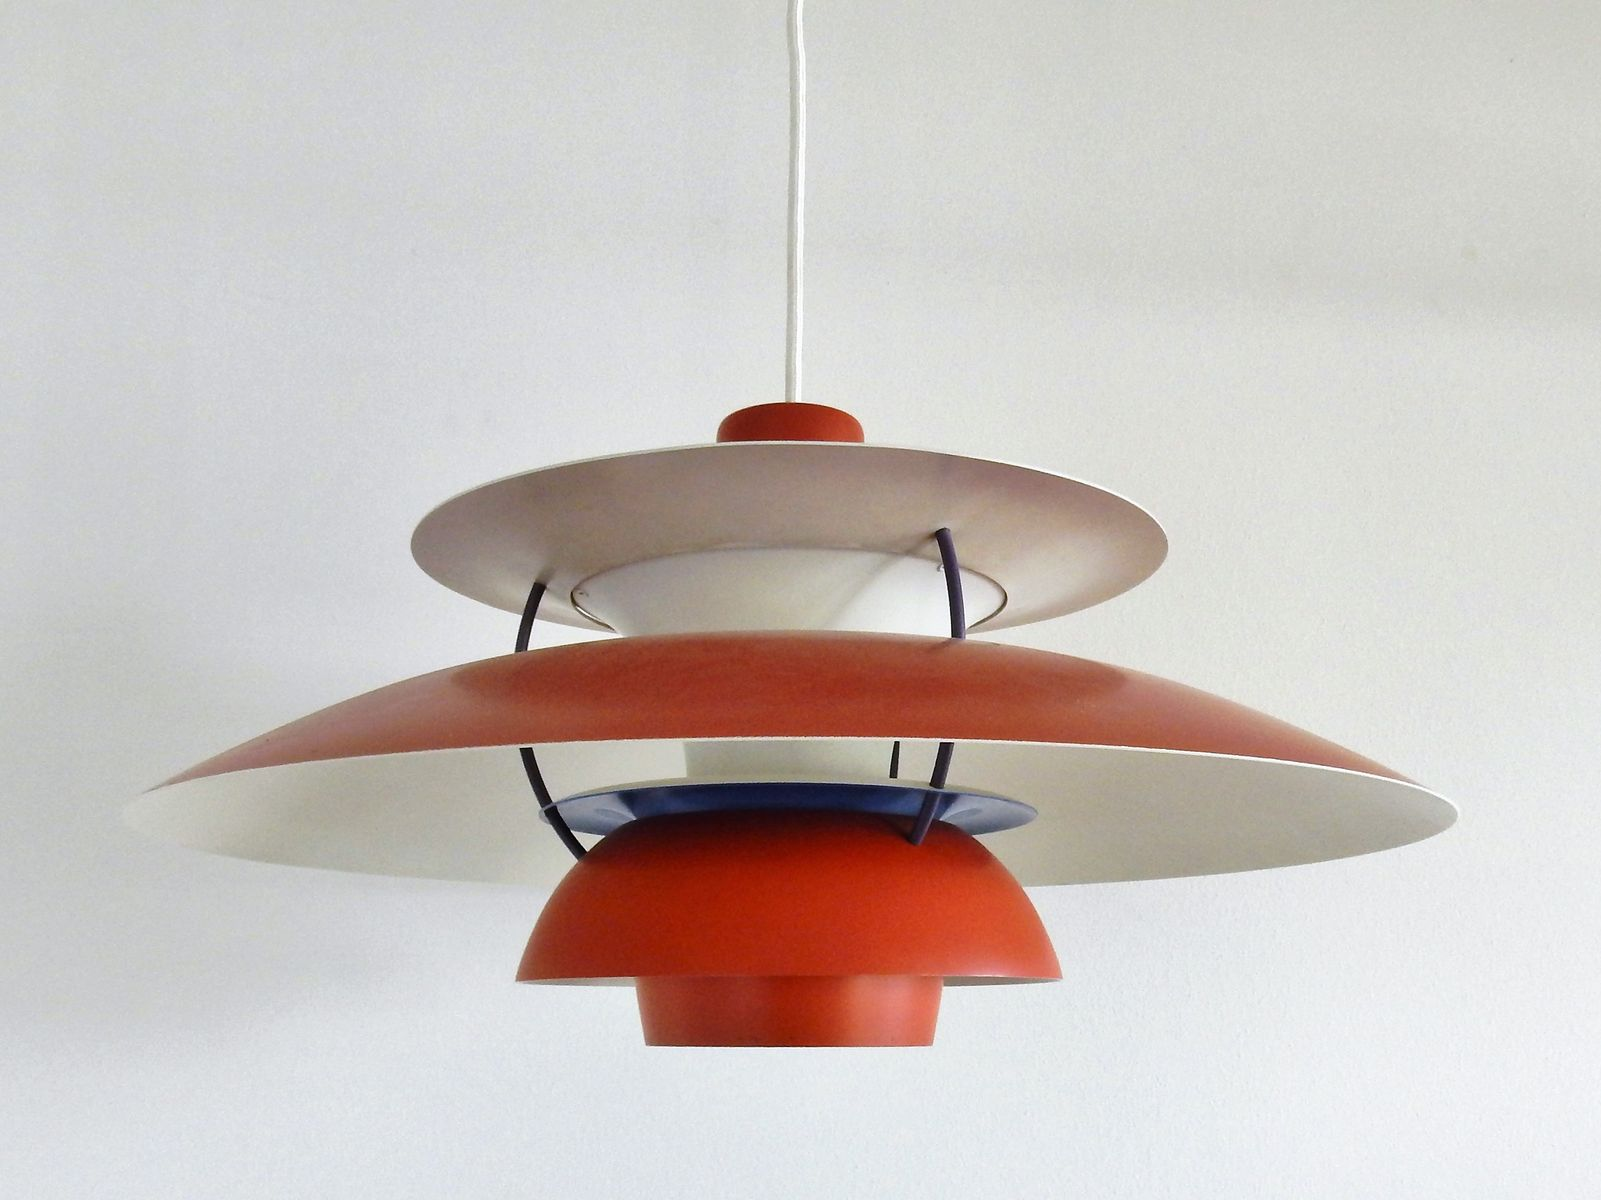 Ph5 pendant by poul henningsen for louis poulsen 1950s for sale at ph5 pendant by poul henningsen for louis poulsen 1950s for sale at pamono aloadofball Choice Image